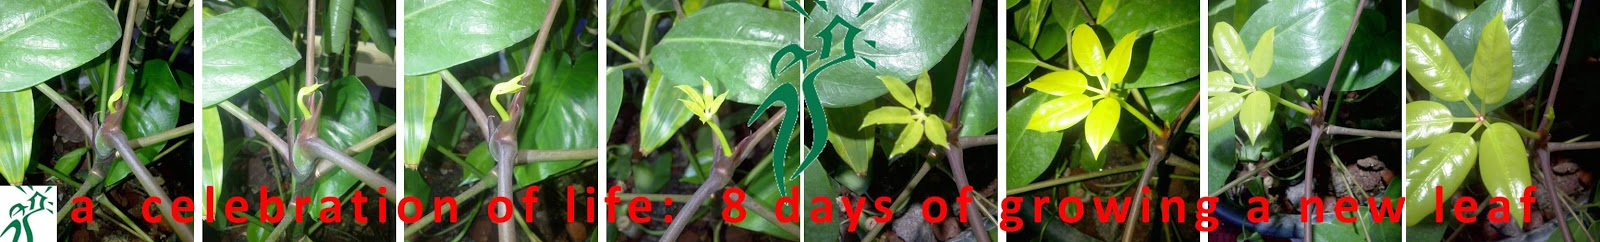 Momentification. A celebration of Life: 8 days of growing a new leaf.